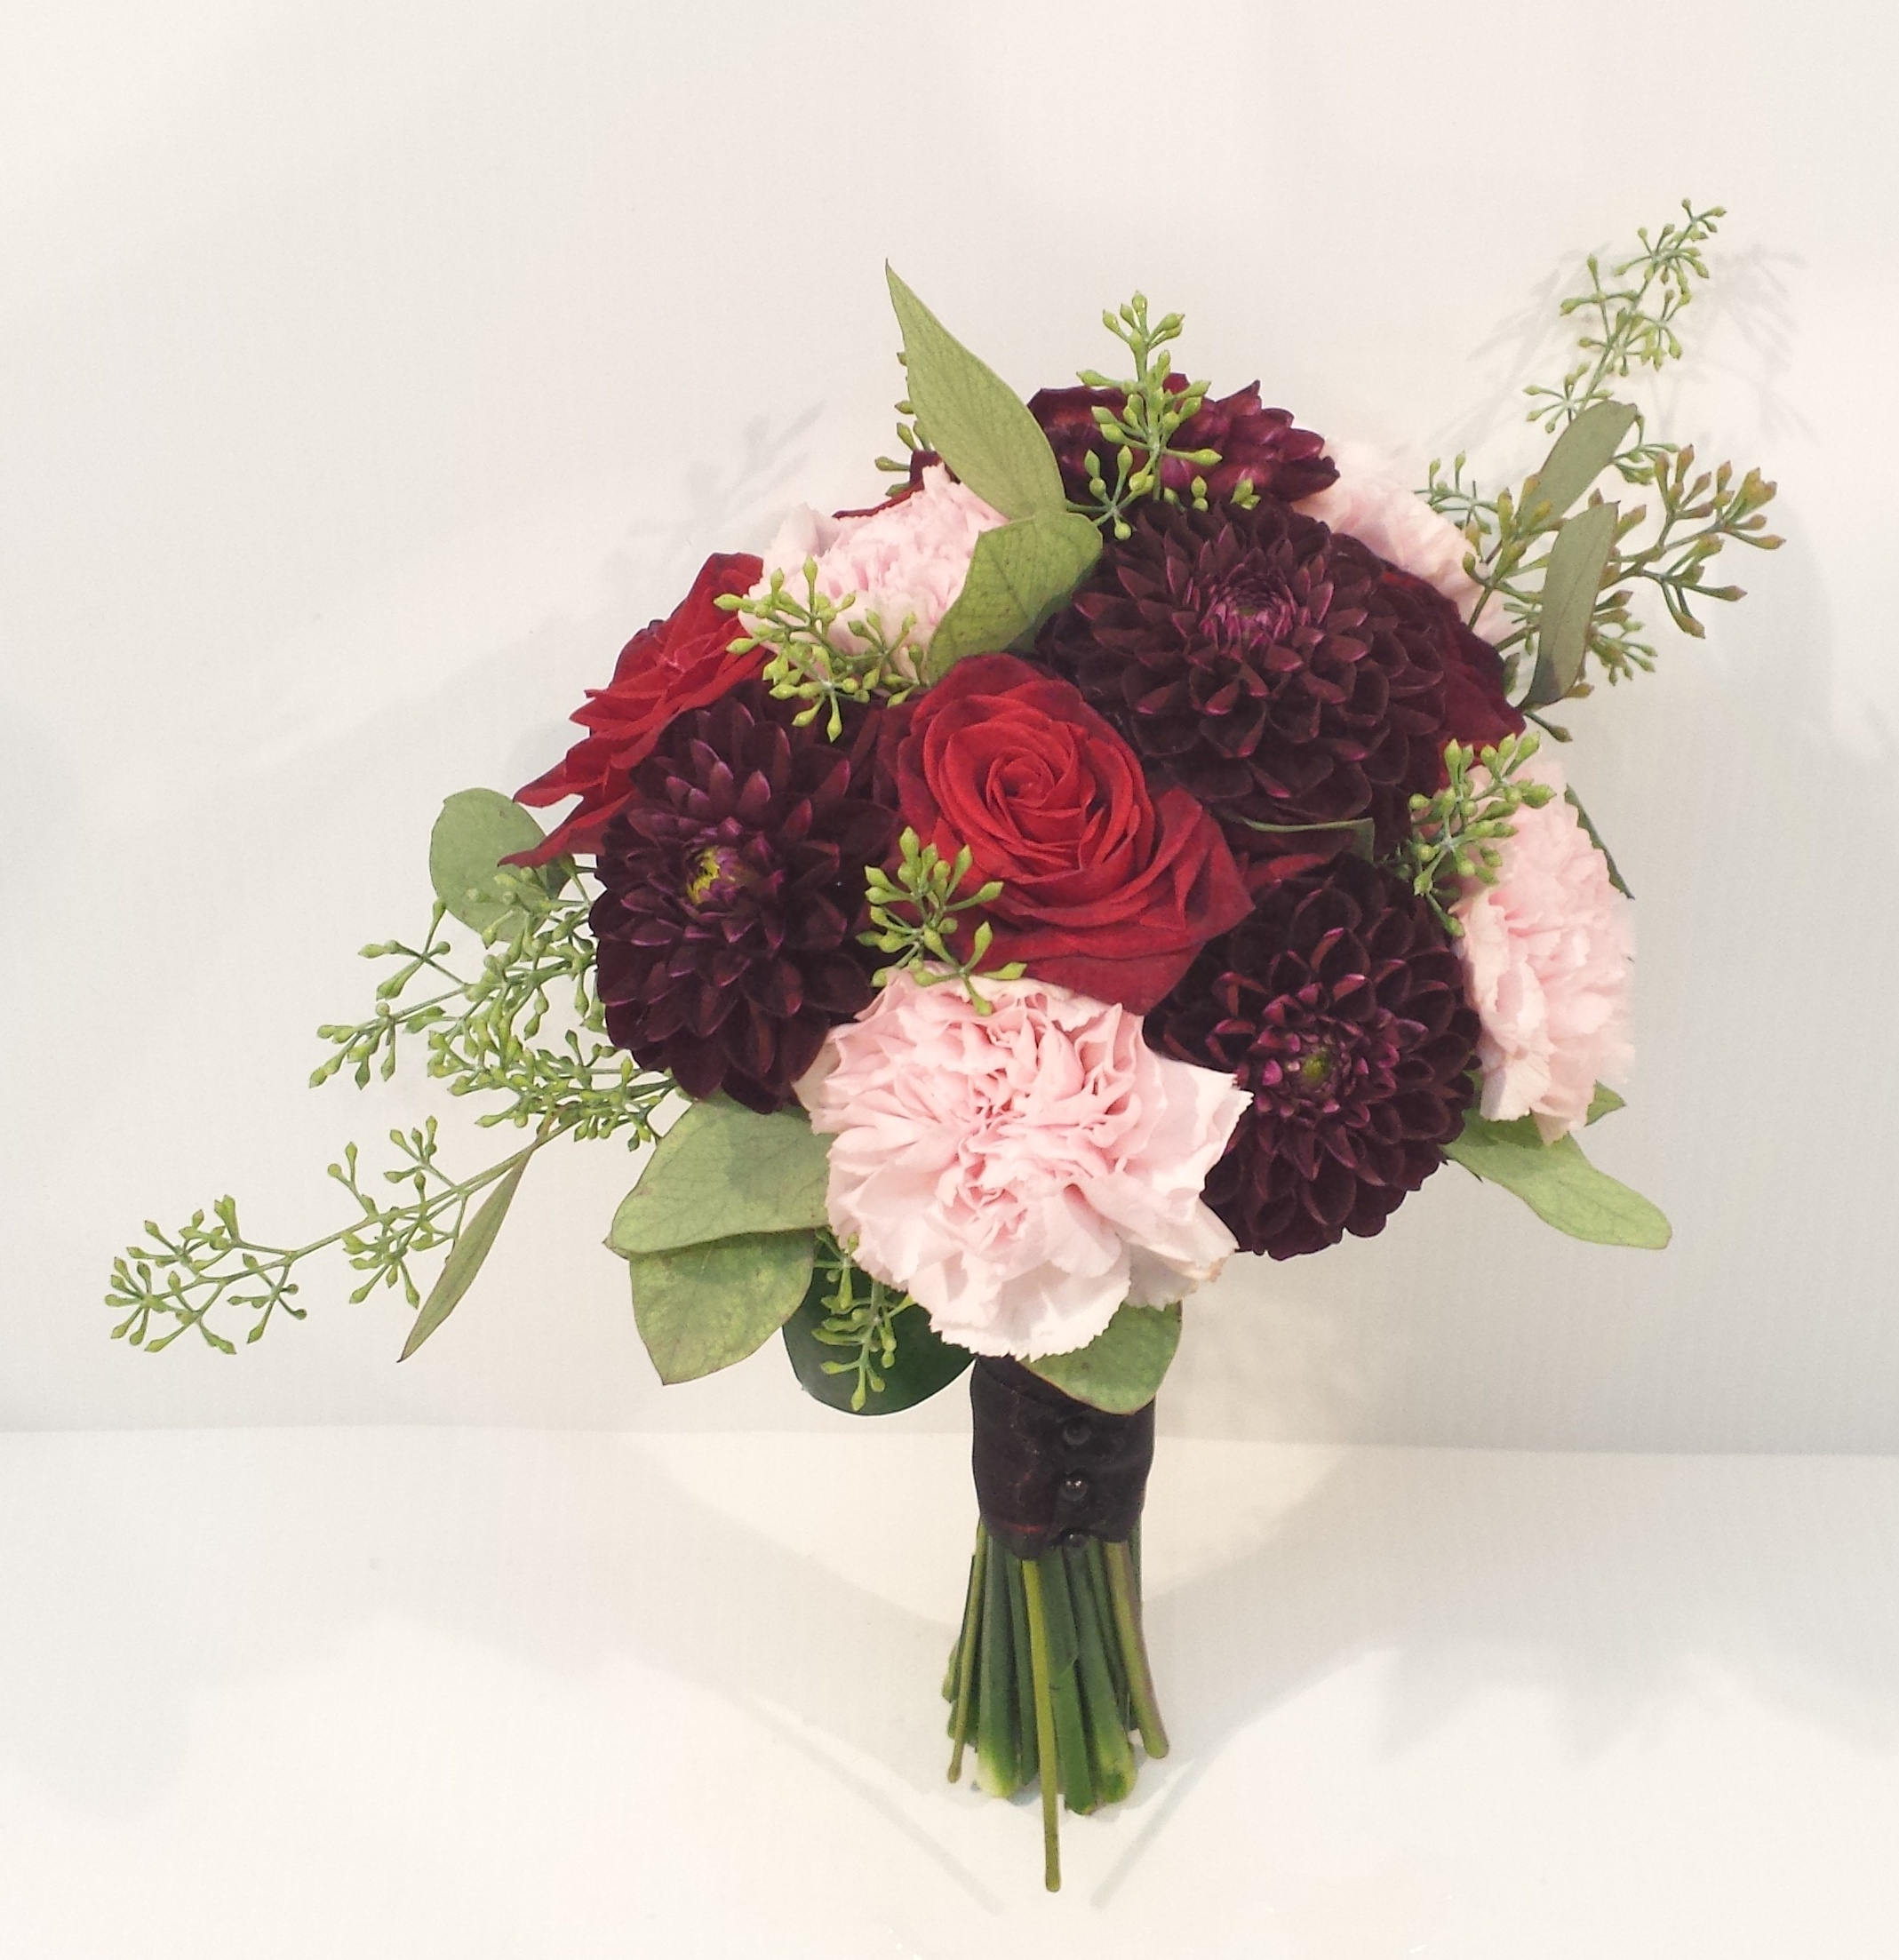 calgary wedding flowers florist dahlia floral design yyc weddings real weddings inspiration bridal bouquet wedding flowers burgundy rustic pink blush